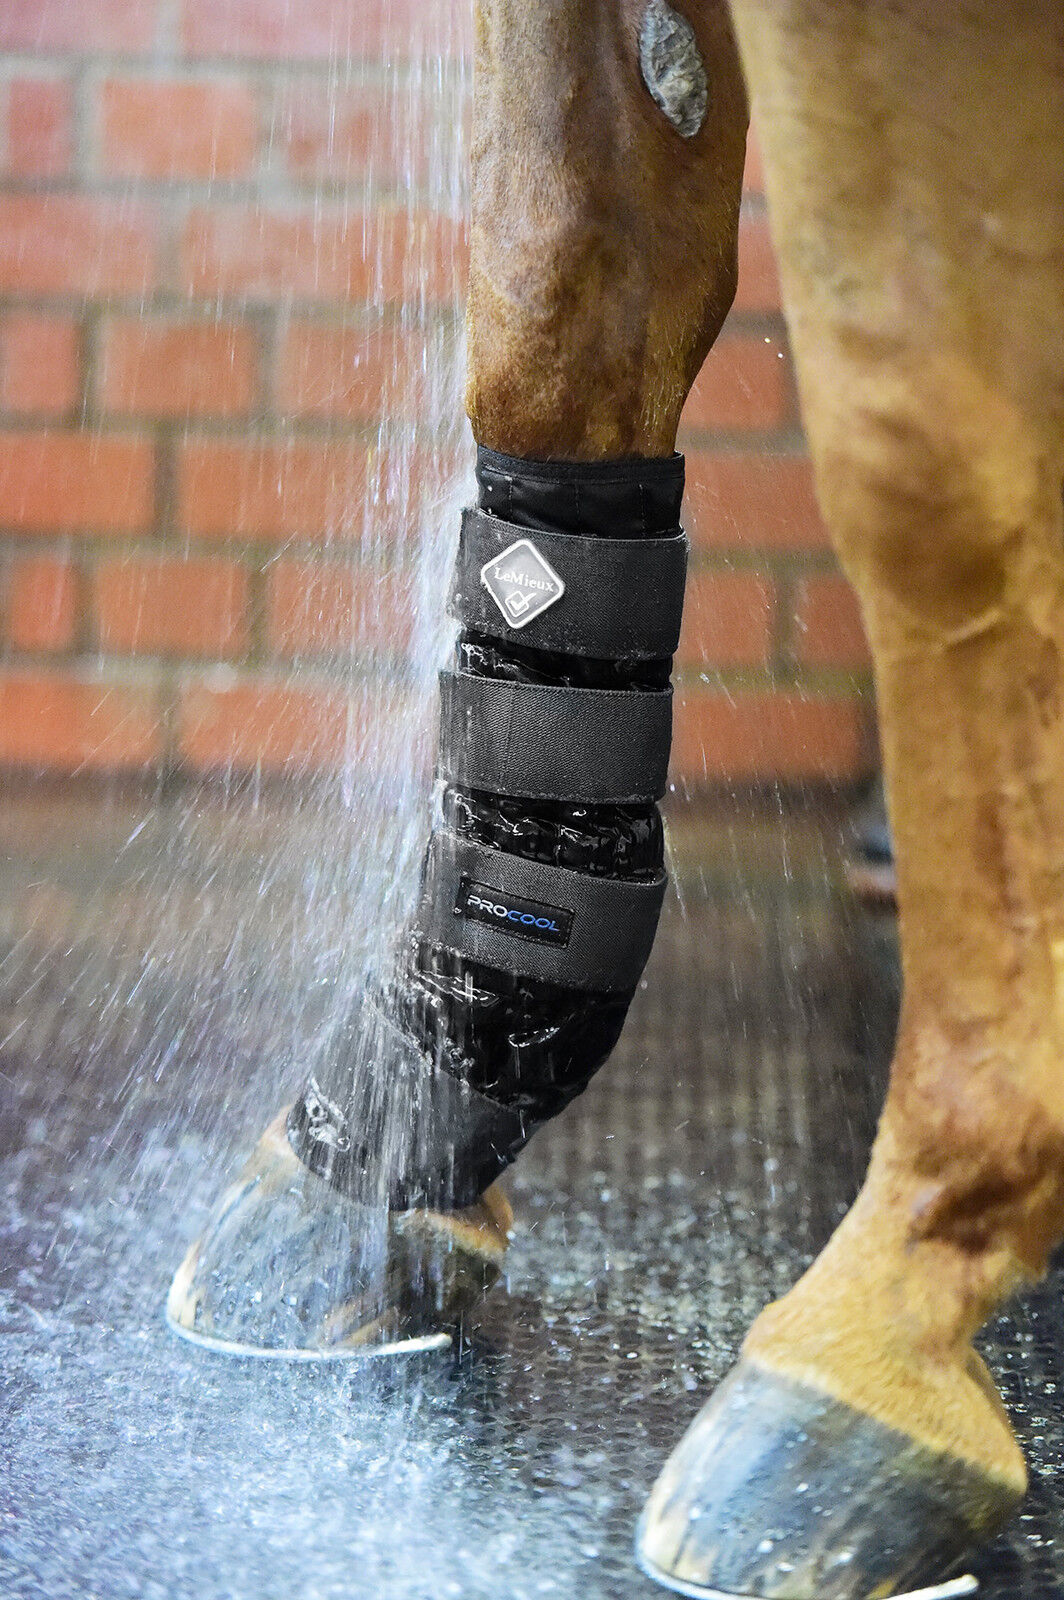 LeMieux PROCOOL Cold Water  Therapy Compression Boots Reduce Heal Tendon Swelling  all in high quality and low price